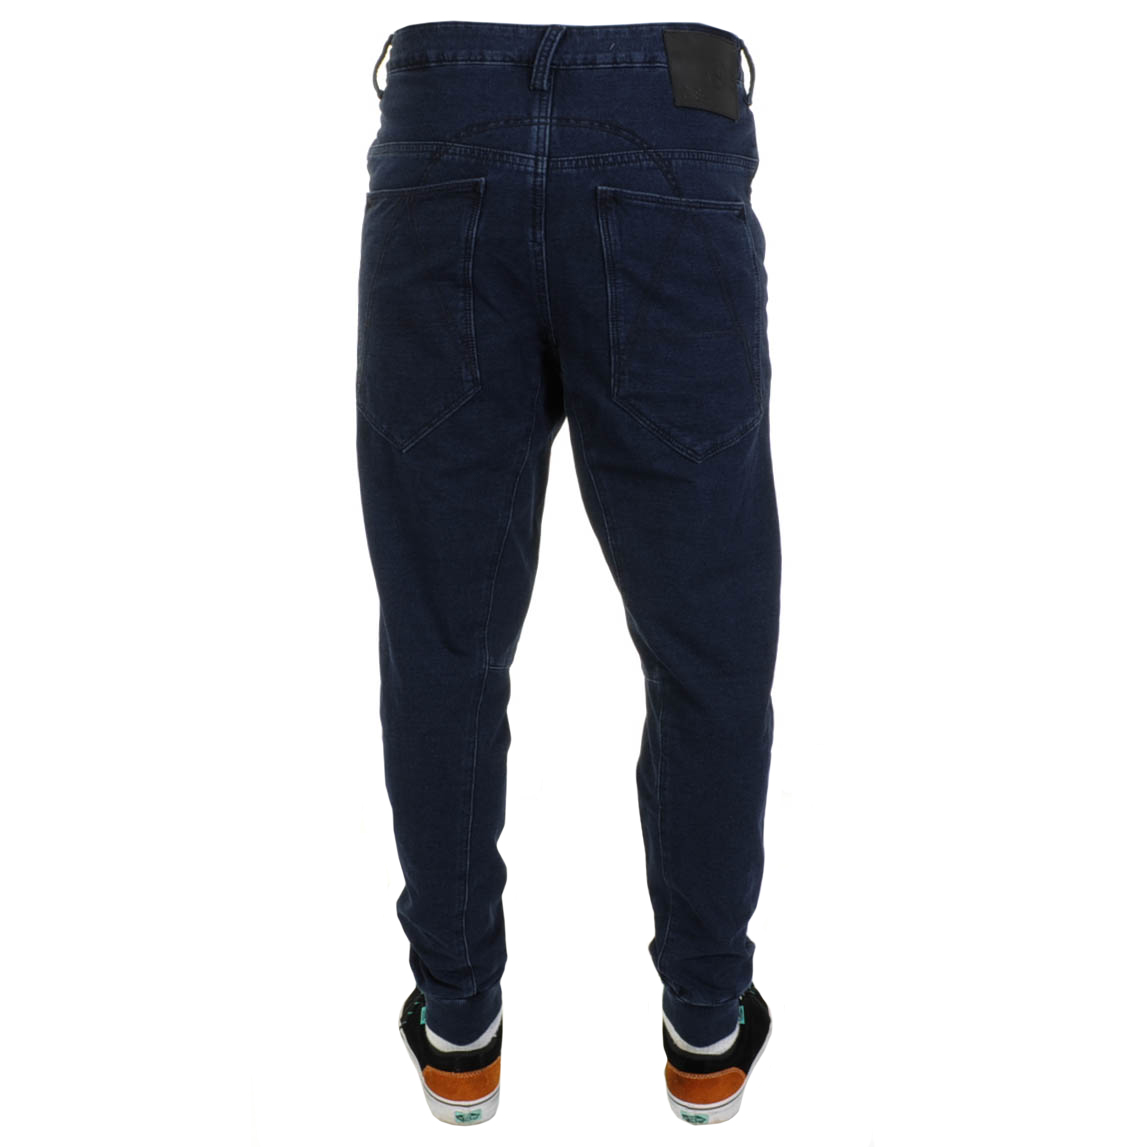 By nature these casual fitting jeans are made for everyday informal life,  their comfort might persuade you to wear them on occasions where skinny ...